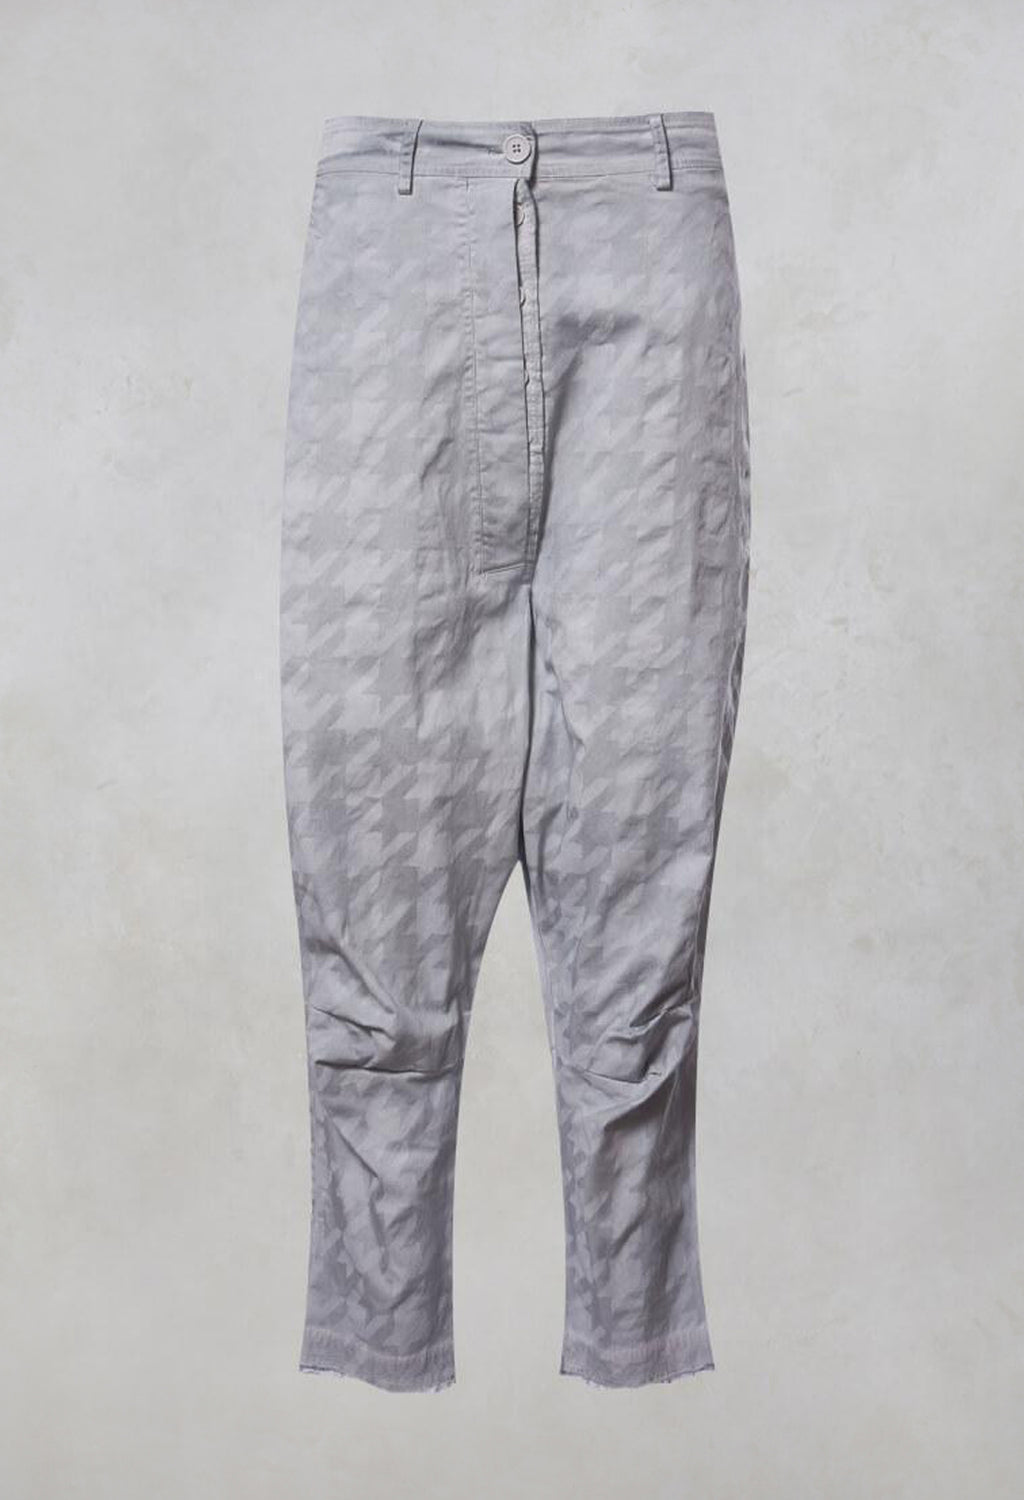 Oversized High Waisted Drop Crotch Jeans in Grey Check